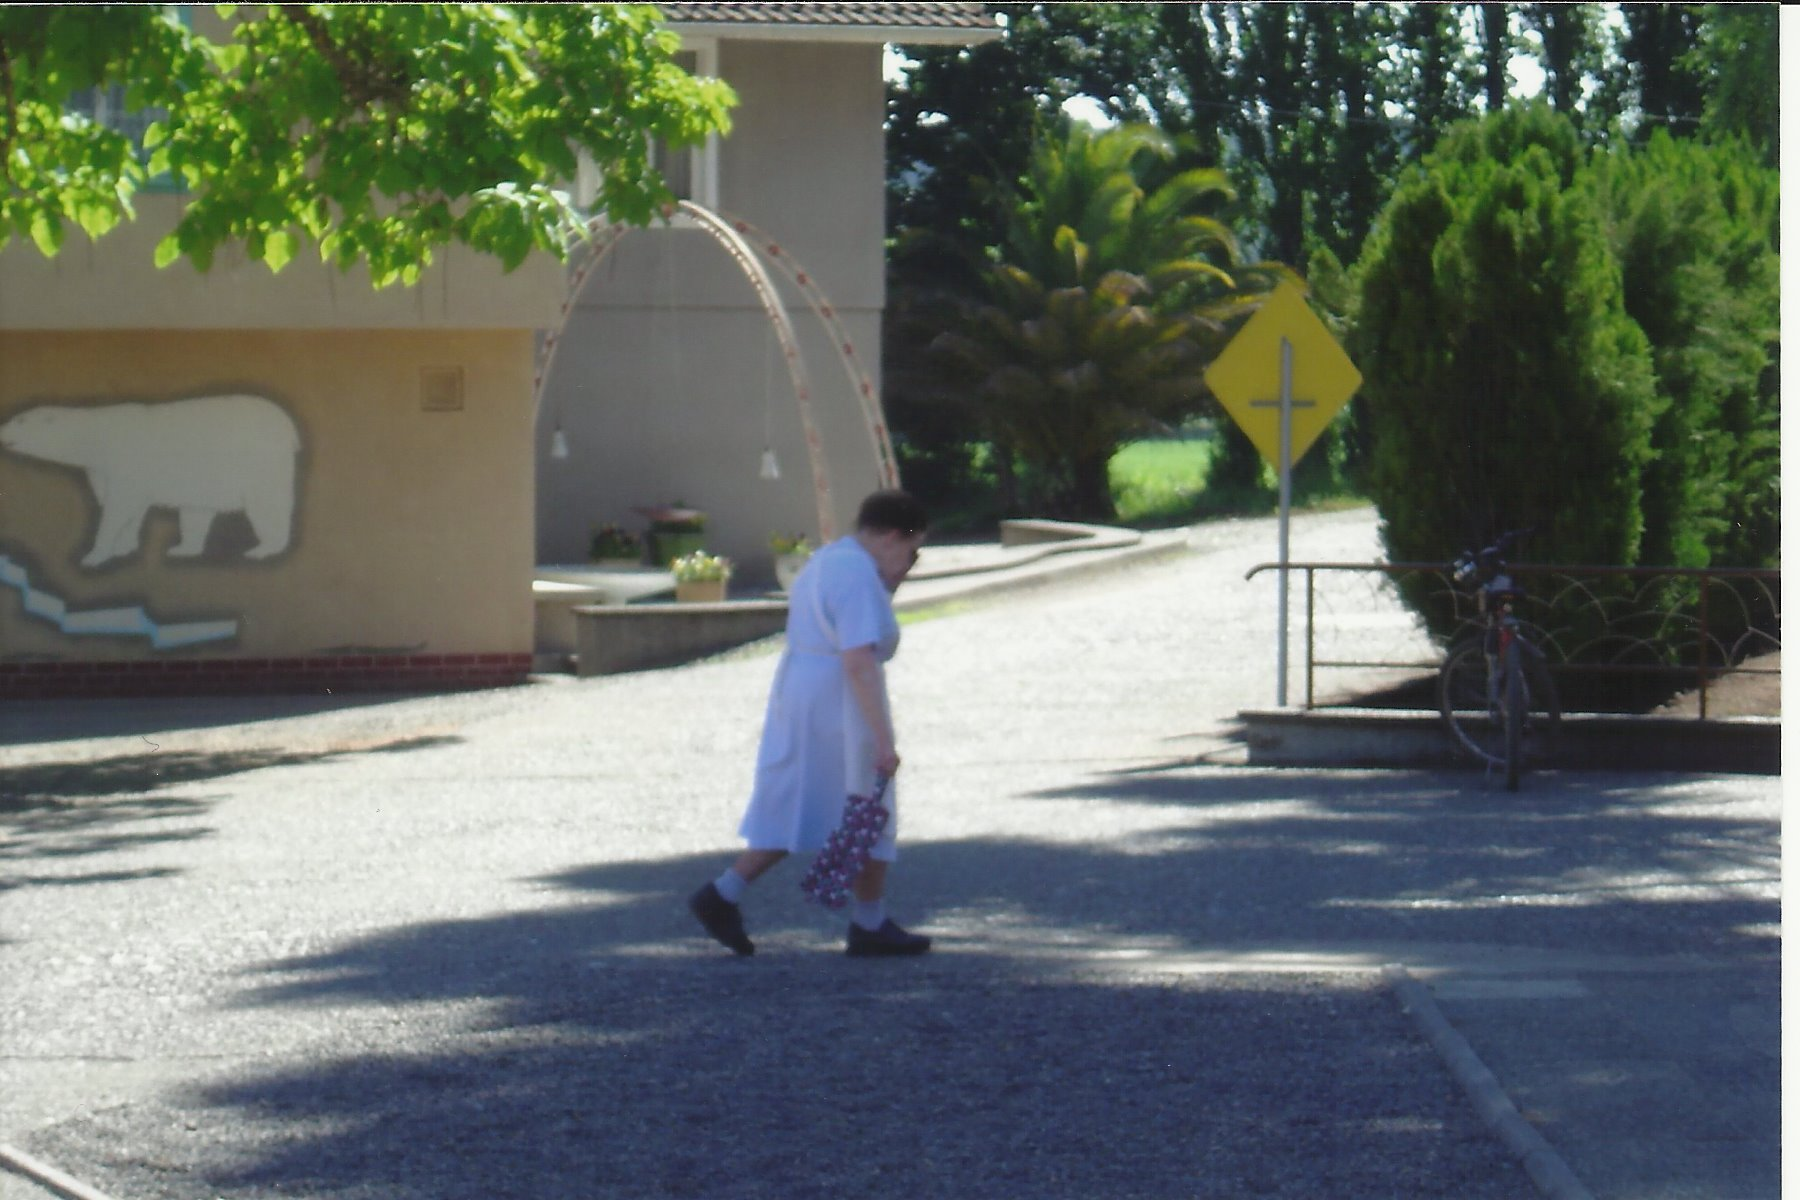 An elderly woman past by in the residential area.